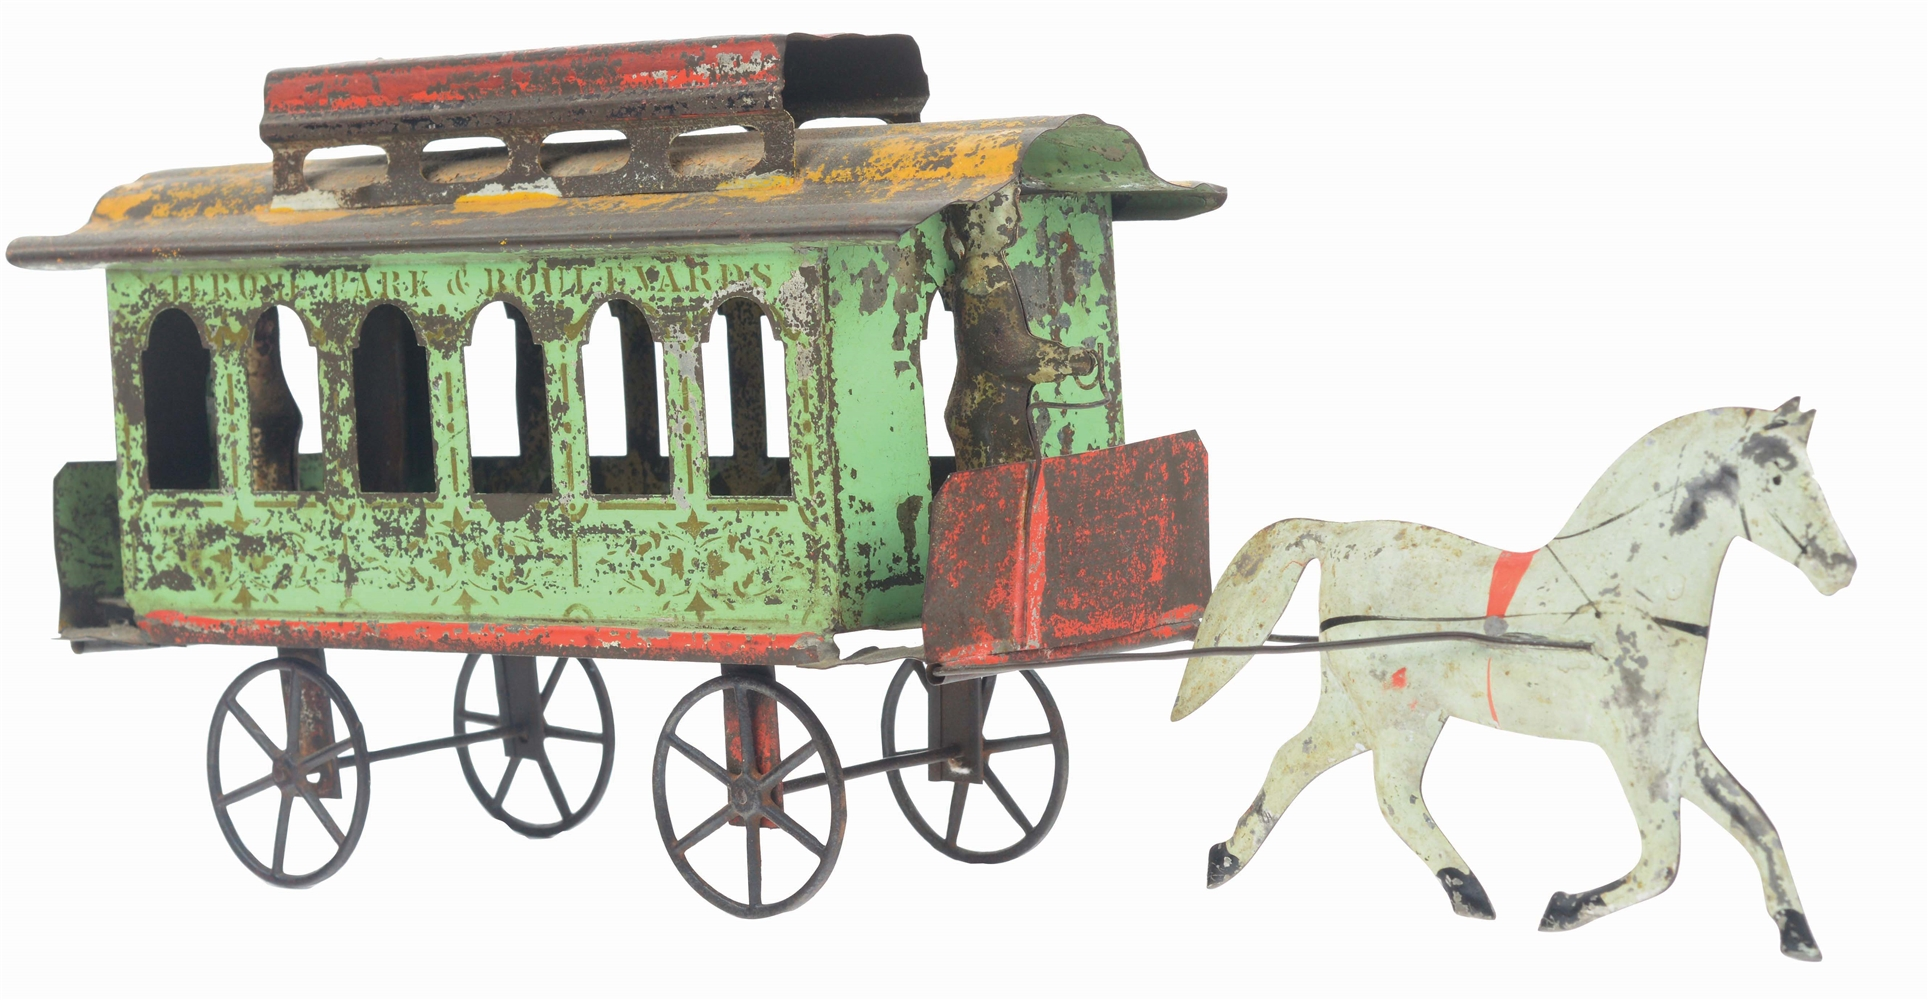 ATTRIBUTED TO GEORGE BROWN ONE HORSE DRAWN JEROME PARK TIN TROLLEY.